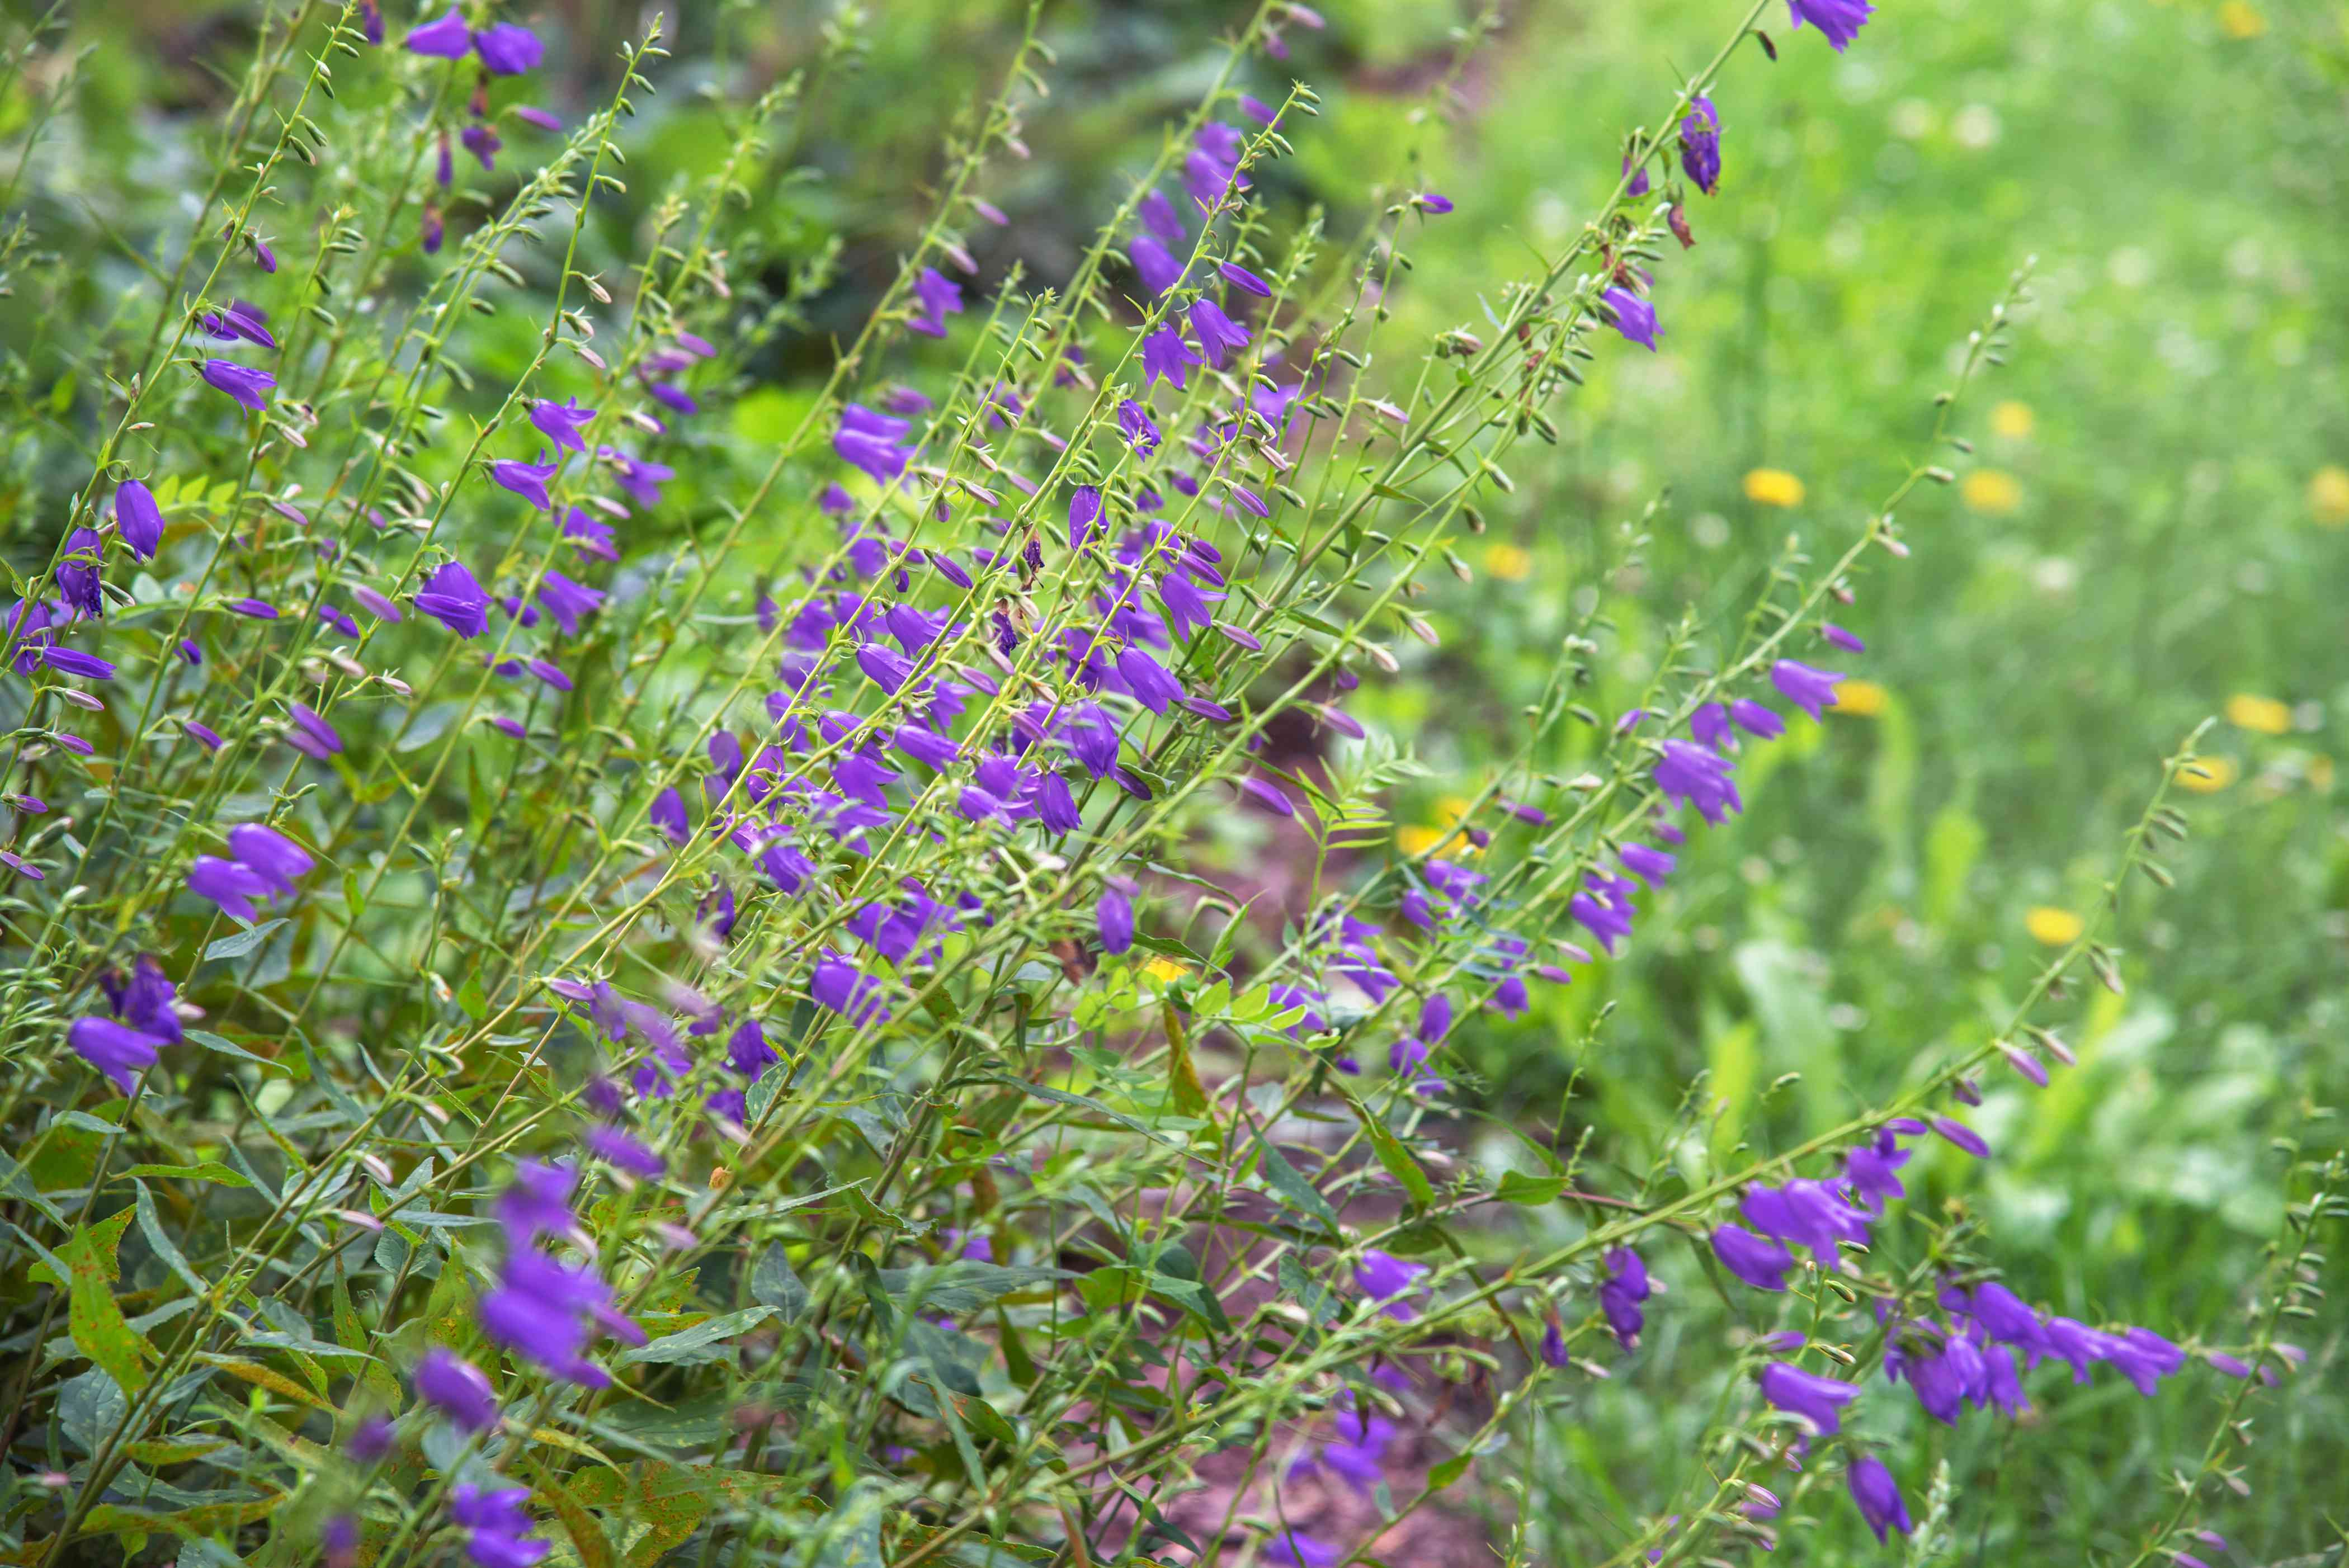 Creeping bellflower weed plant with long thin stems and purple bell-shaped flowers in garden